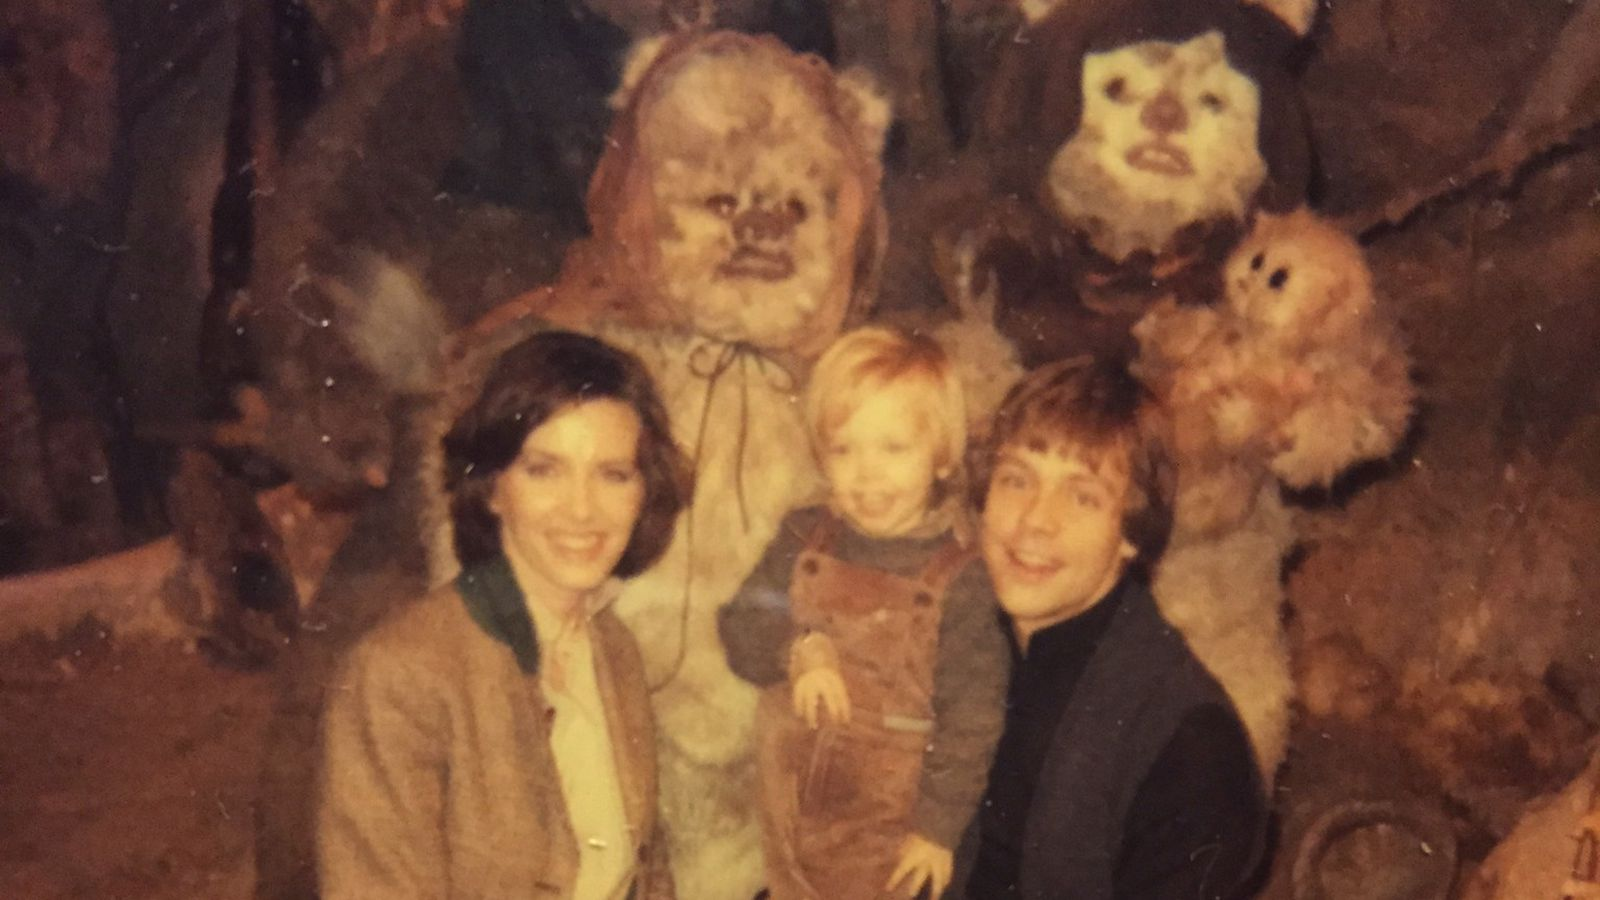 Luke Skywalker shows his family photo album from Return of the Jedi | The Verge